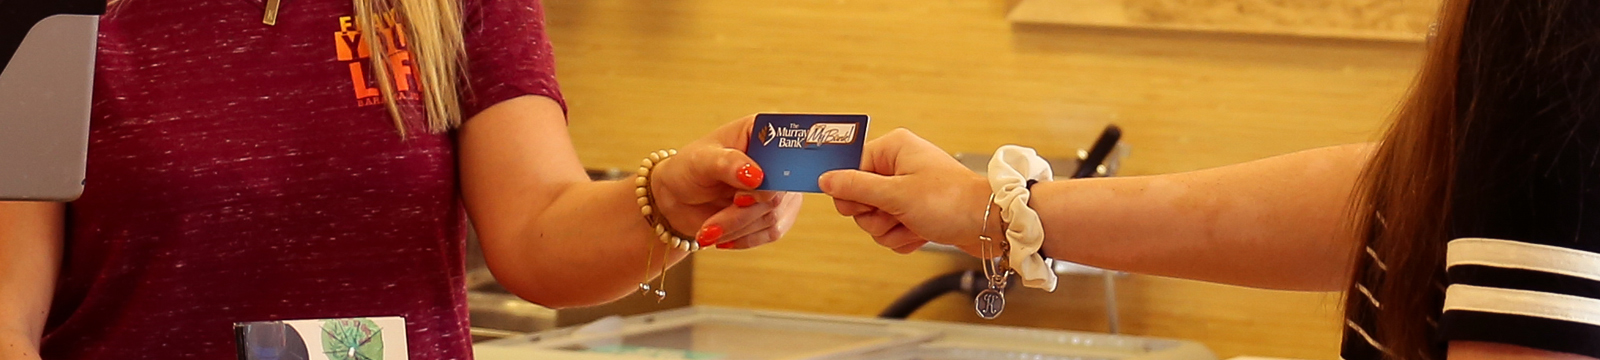 woman handing person a credit card